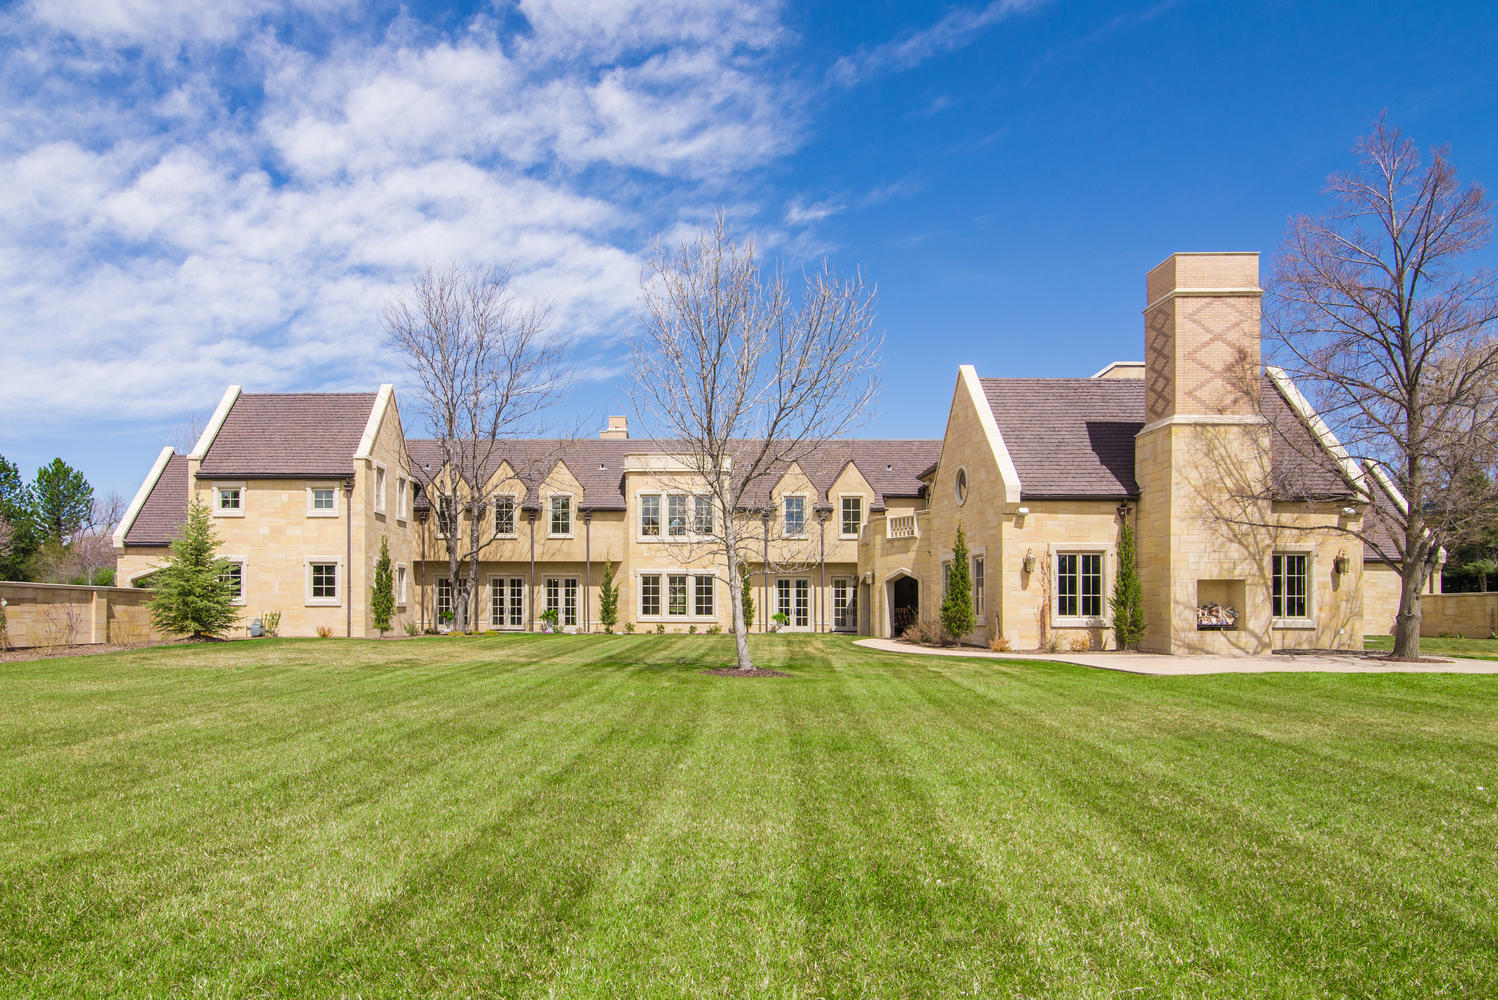 Liv Sir Exclusively Lists English Country Manor In Cherry